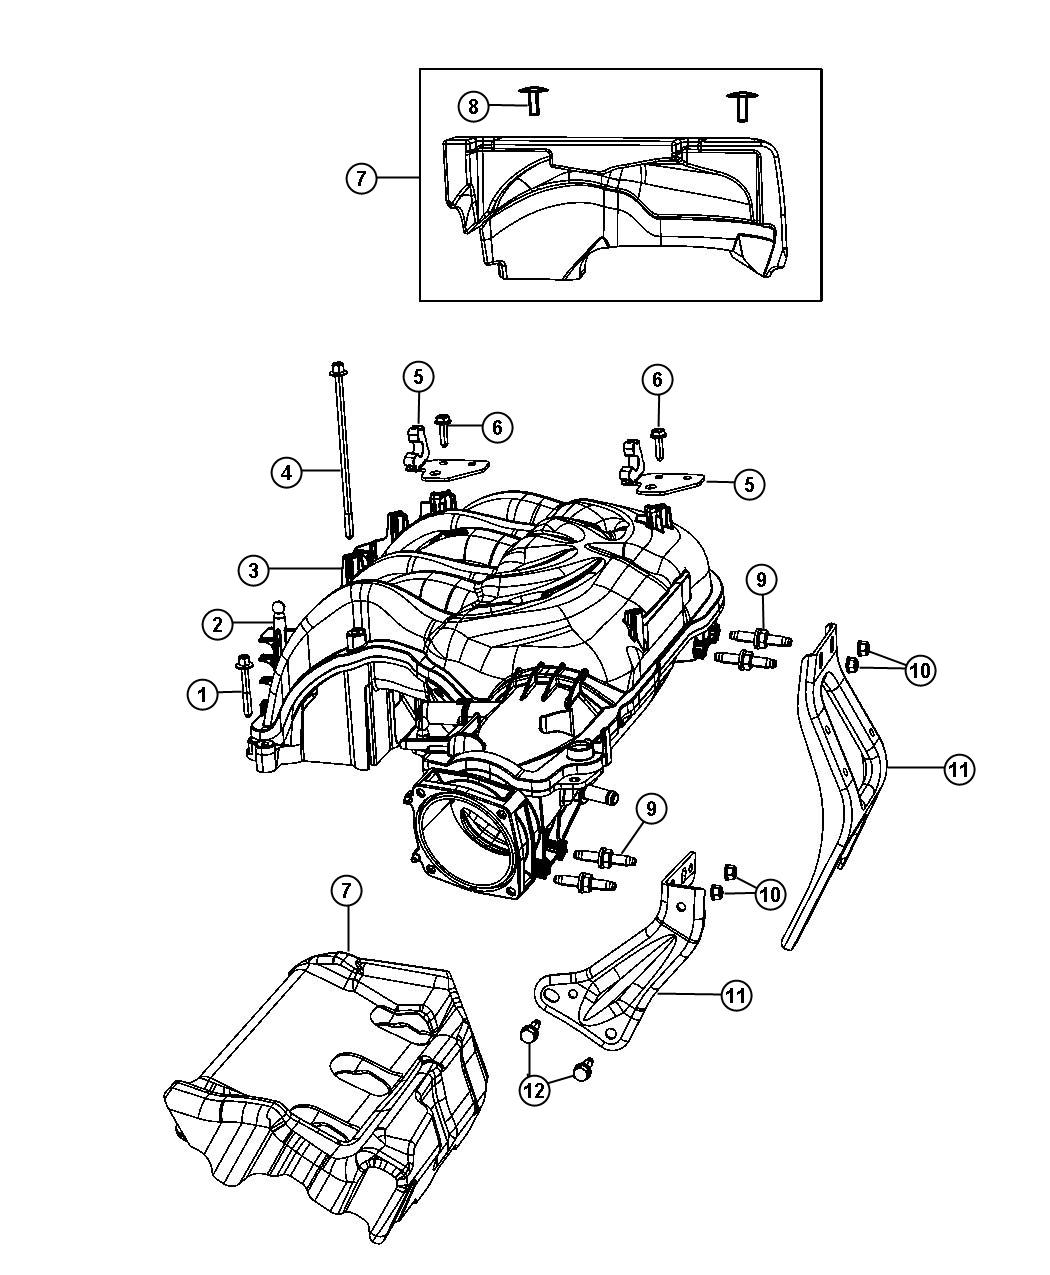 2012 jeep wrangler 3 6l engine diagram  u2022 wiring diagram